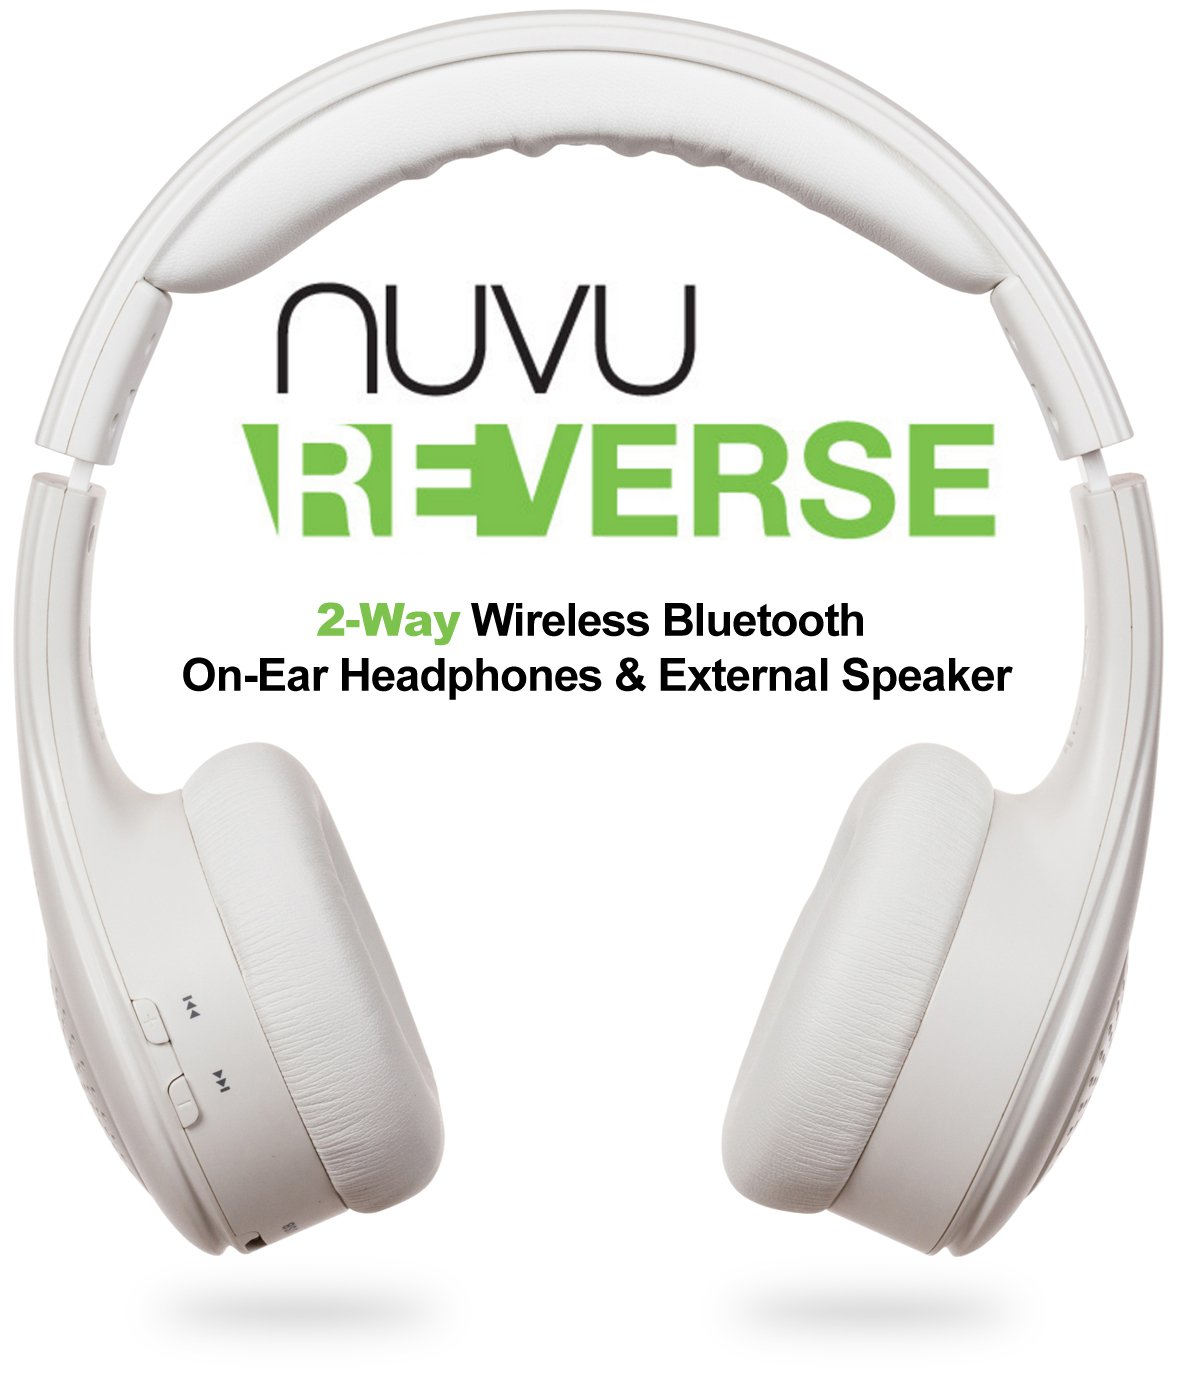 NUVU ReVerse - 2-Way Wireless Bluetooth On-Ear Headphones & External Speaker Stereo System - White